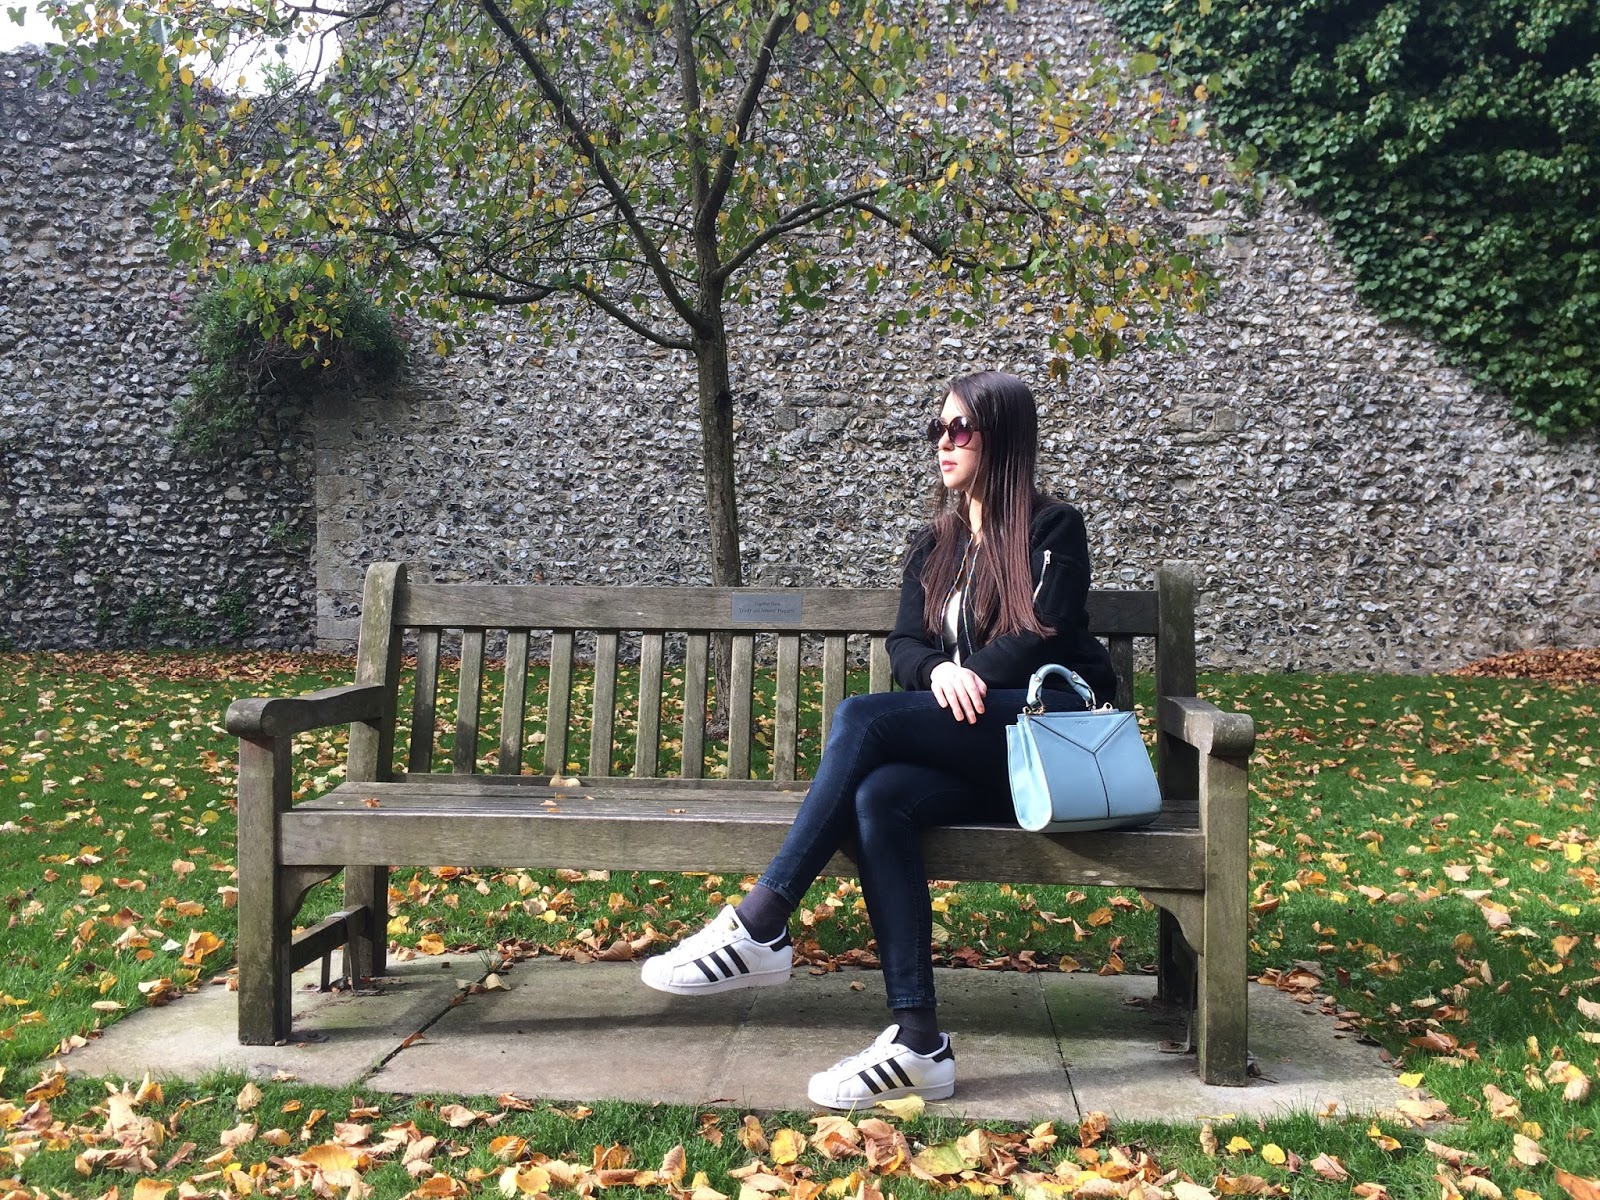 ootd outfit post, fashion blogger bomber jacket adidas trainers mini bag